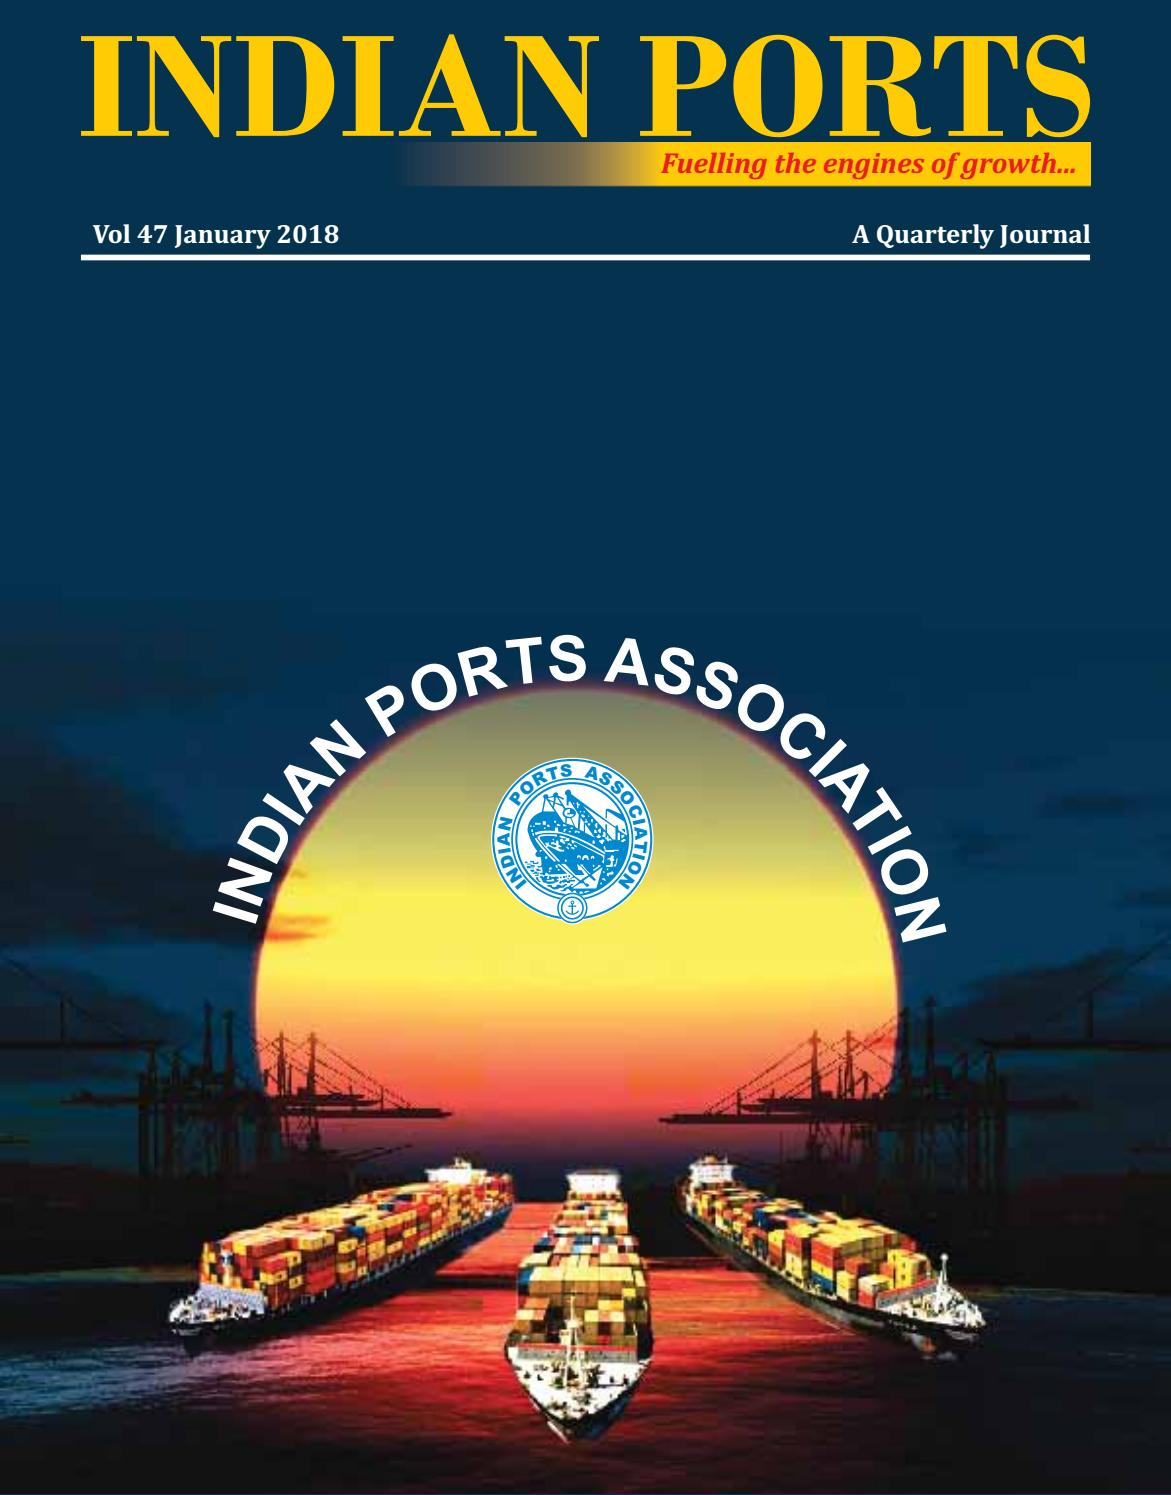 Indian ports journal january 2018 pdf by Roselin Kiro - issuu